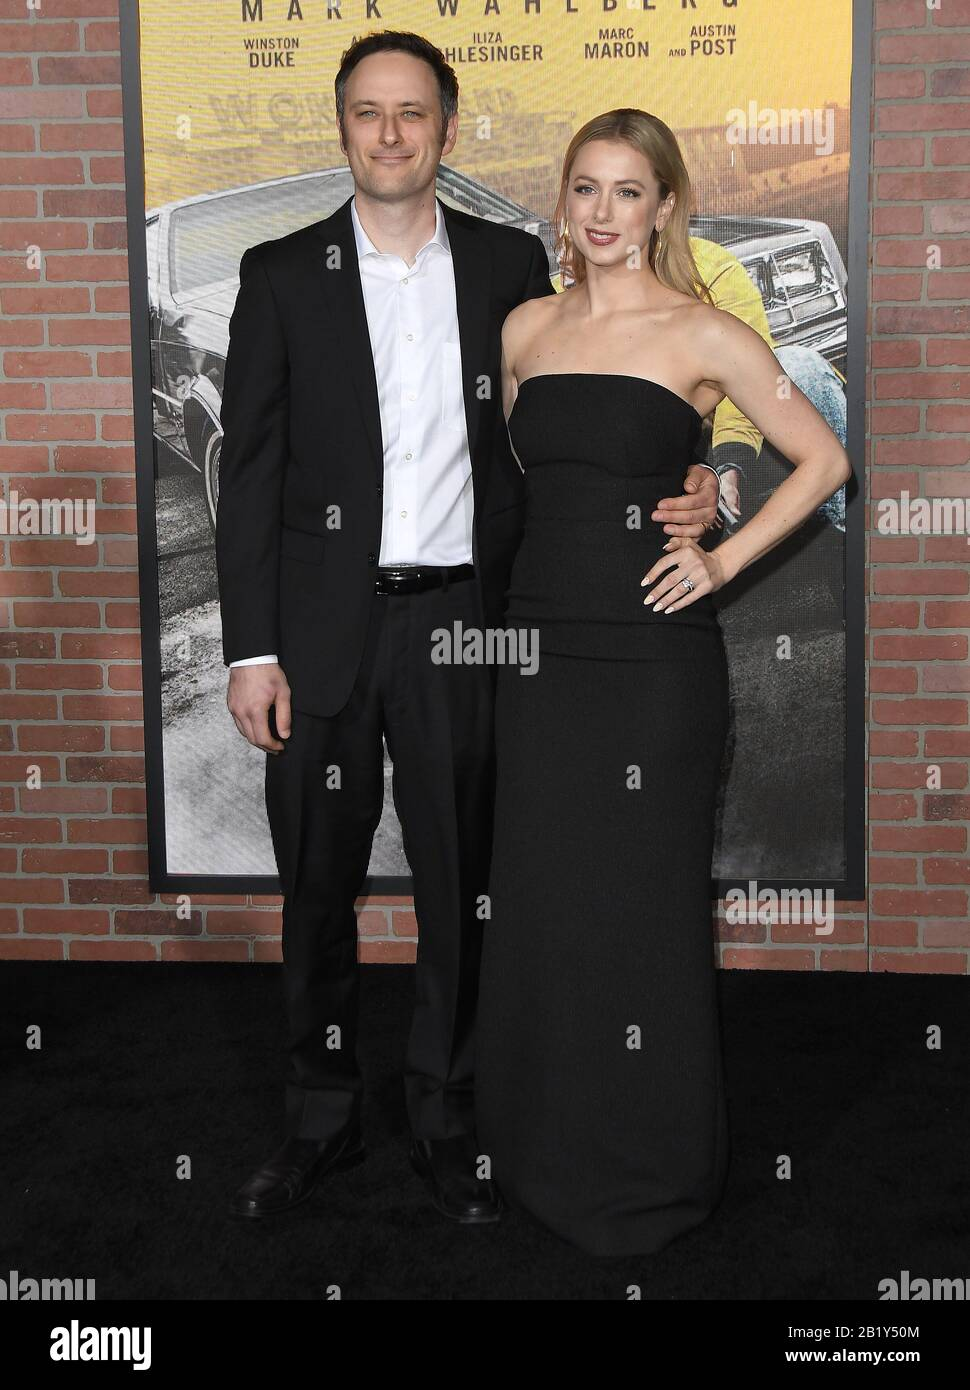 Los Angeles Usa 27th Feb 2020 Noah Galuten And Iliza Shlesinger At The Netflix S Spenser Confidential Premiere Held At The Regency Village Theatre In Westwood Ca On Thursday February 27 2020 Photo